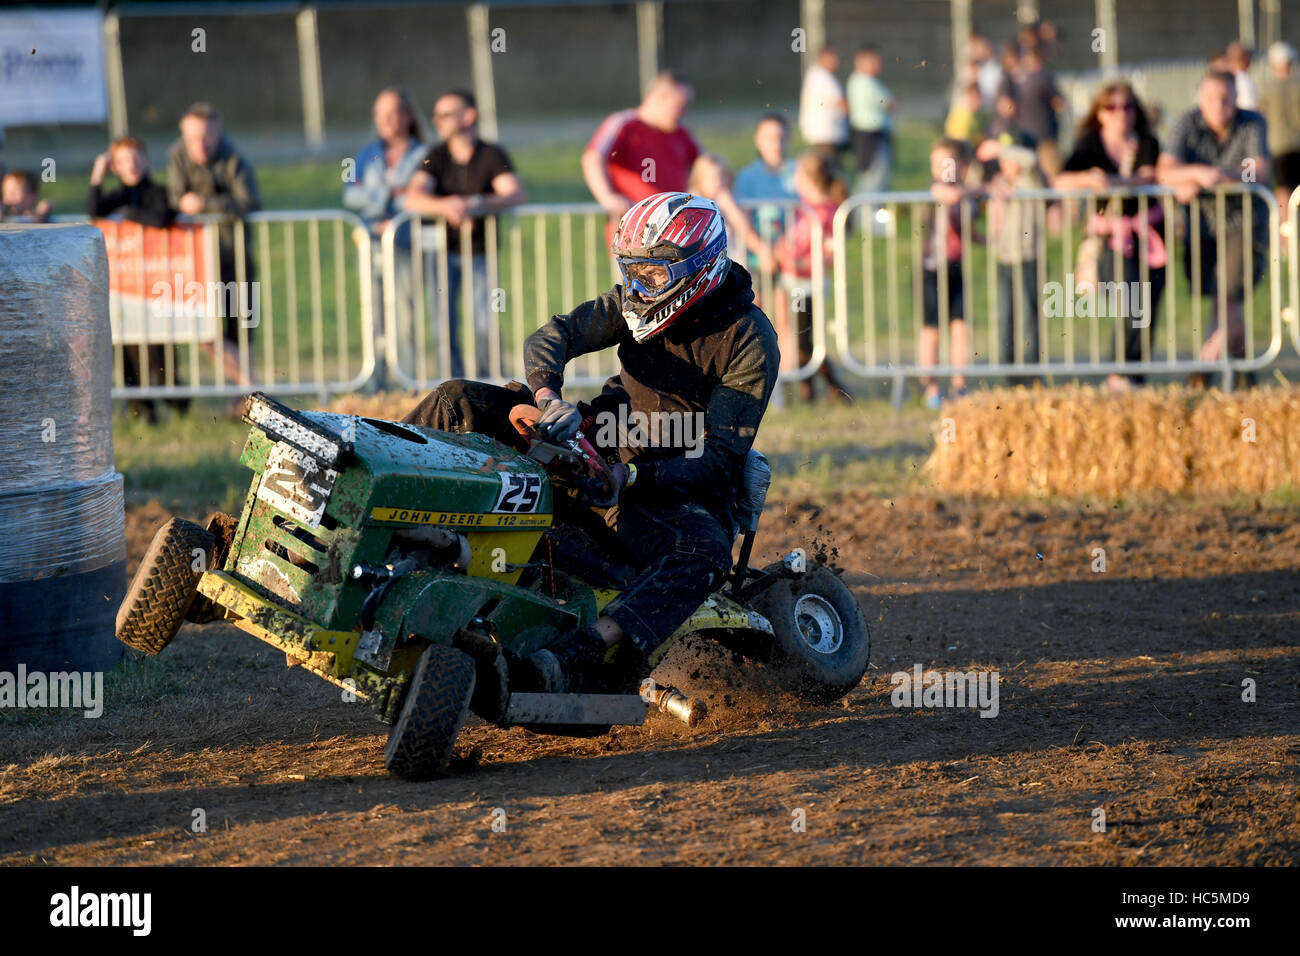 Lawn Mower Racing >> The British Lawn Mower Racing Association 12 Hour Lawn Mower